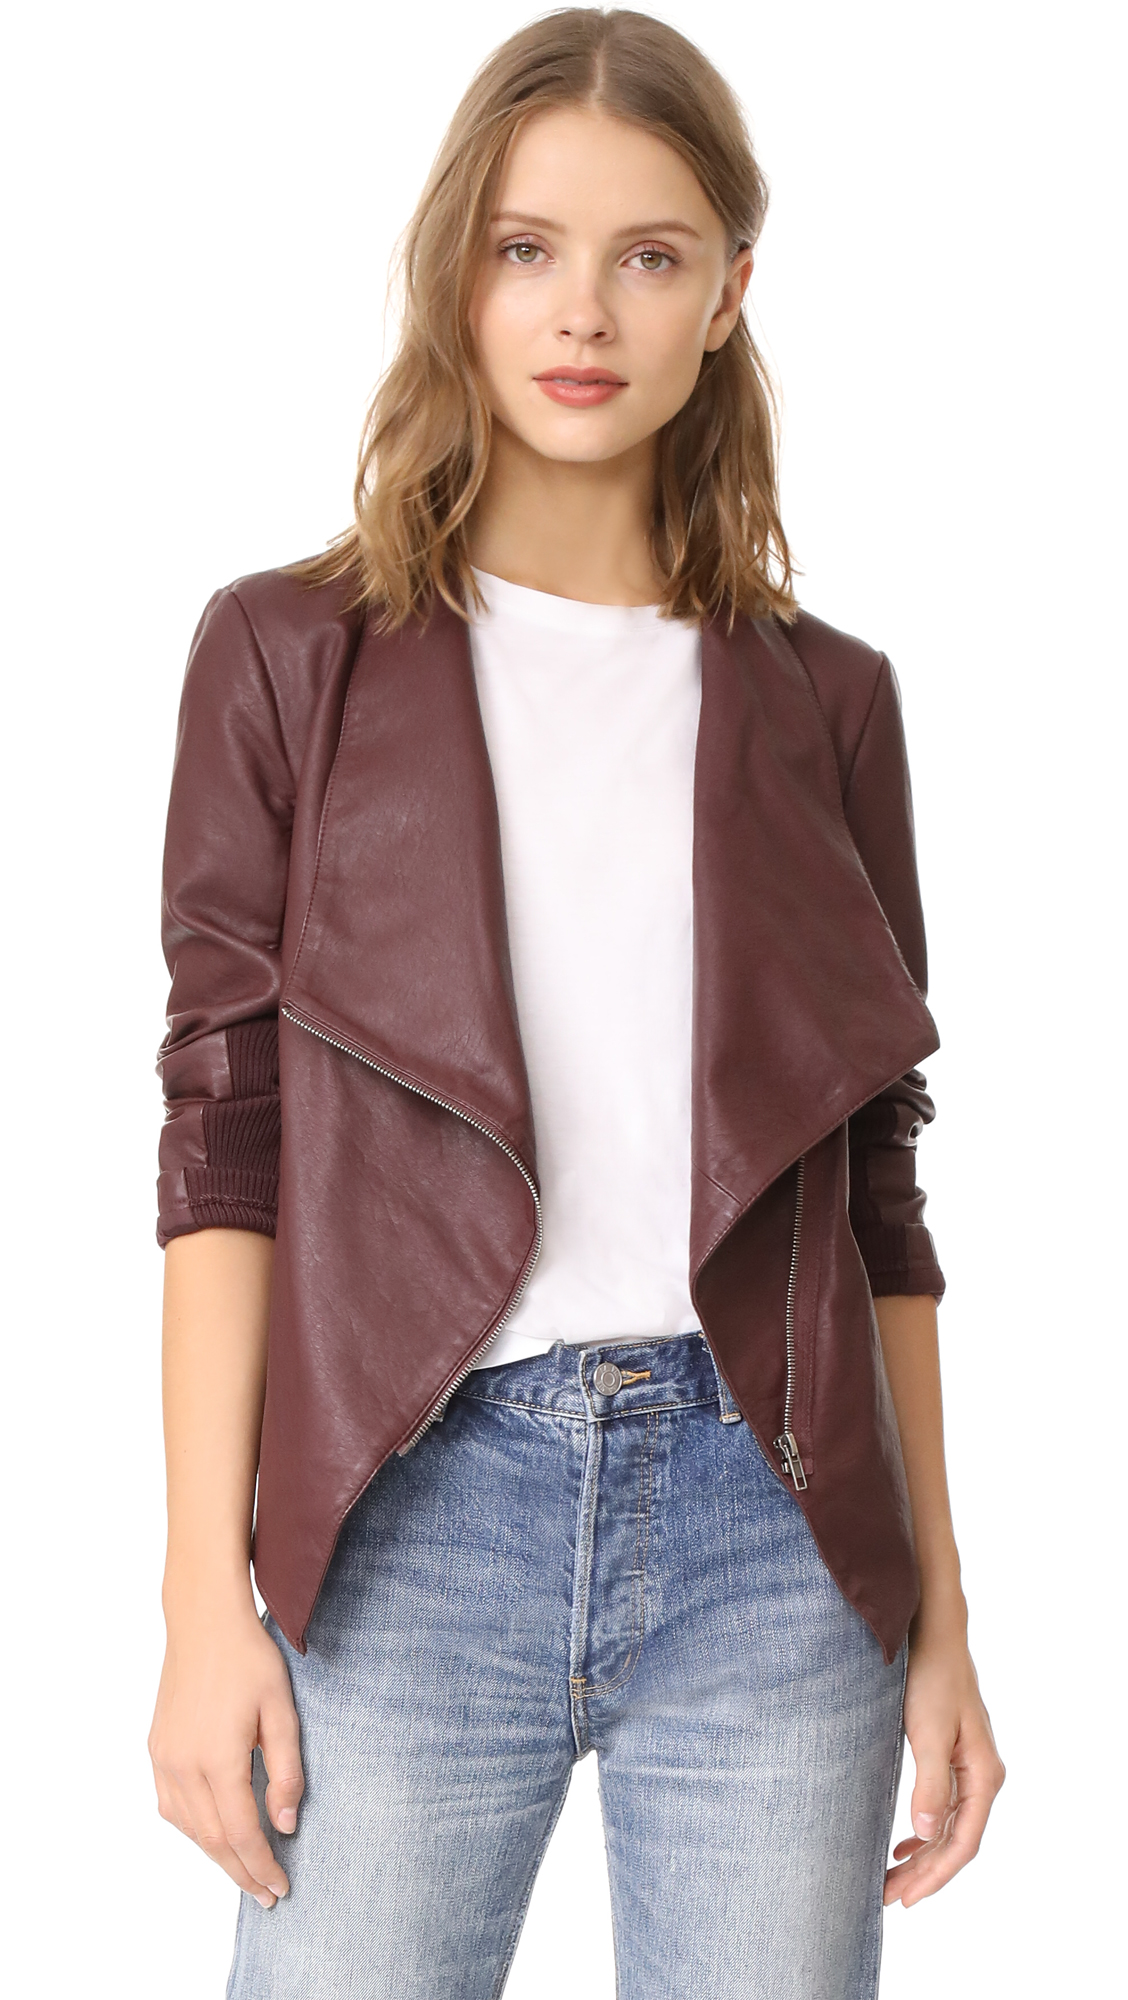 BB Dakota Gabrielle Textured Jacket - Fig